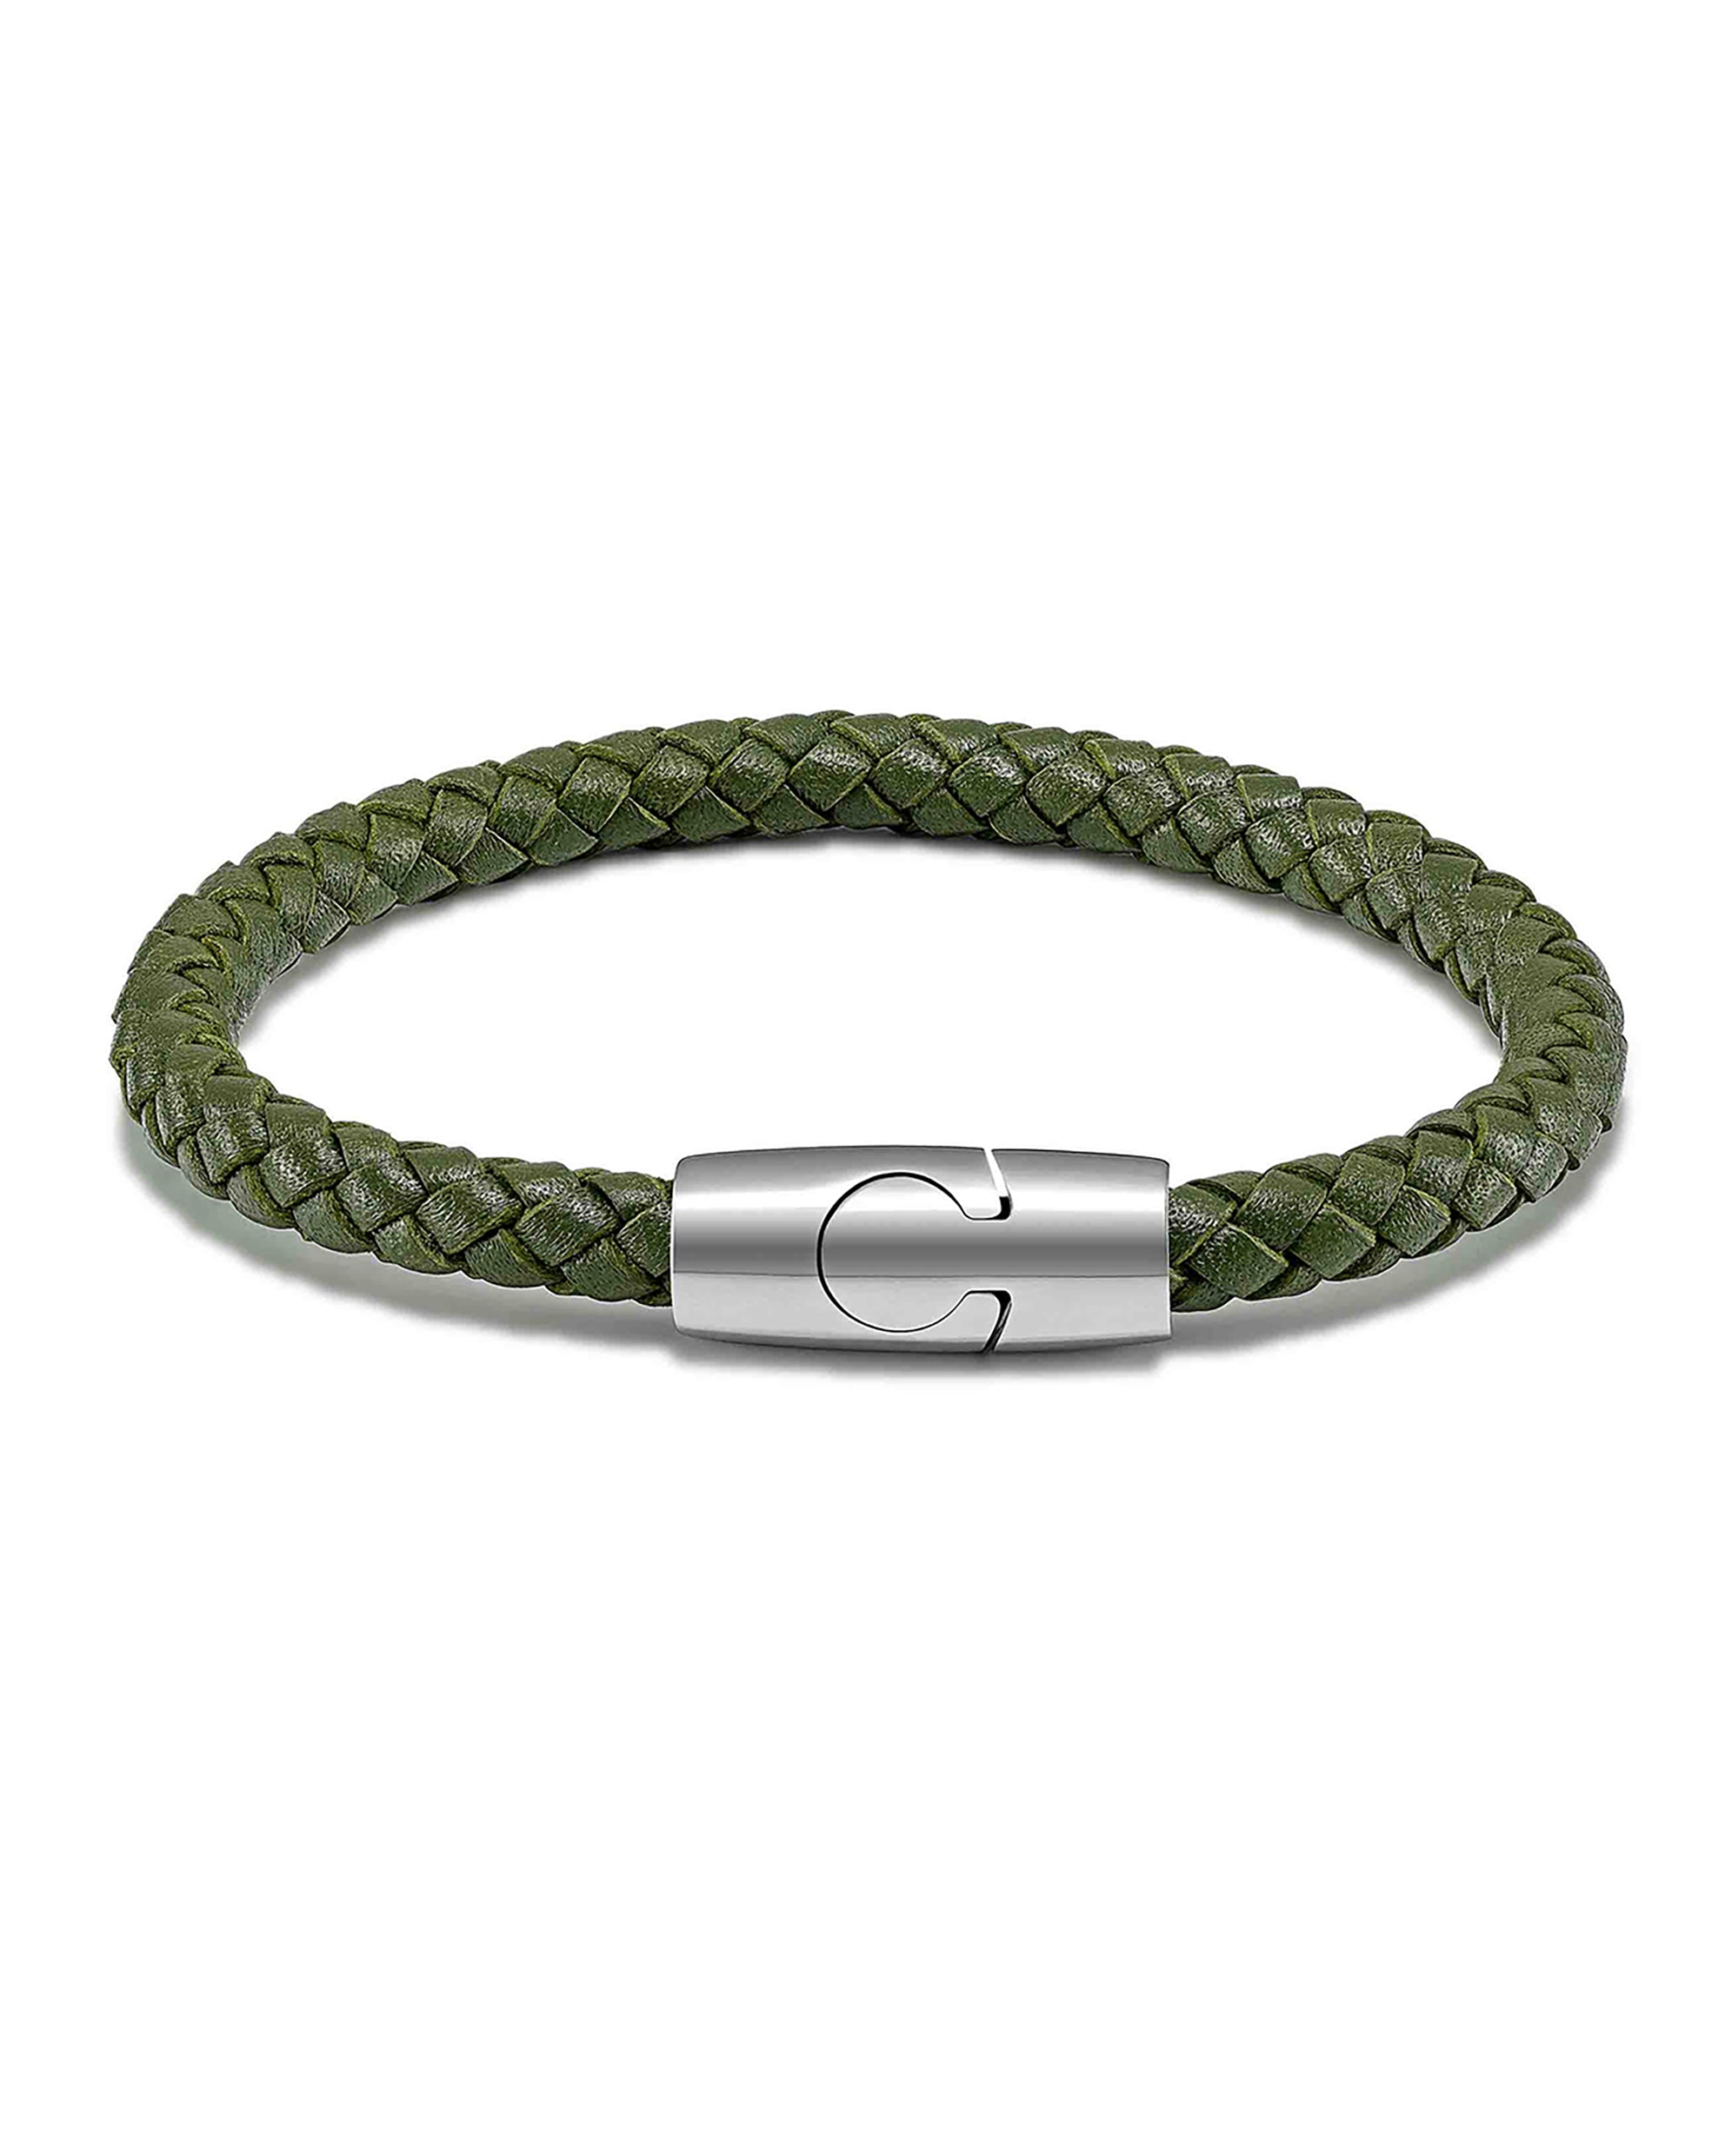 Men's Luxury Olive Green Croc Italian Leather Single Braided Bracelet Strap Silver Clasp